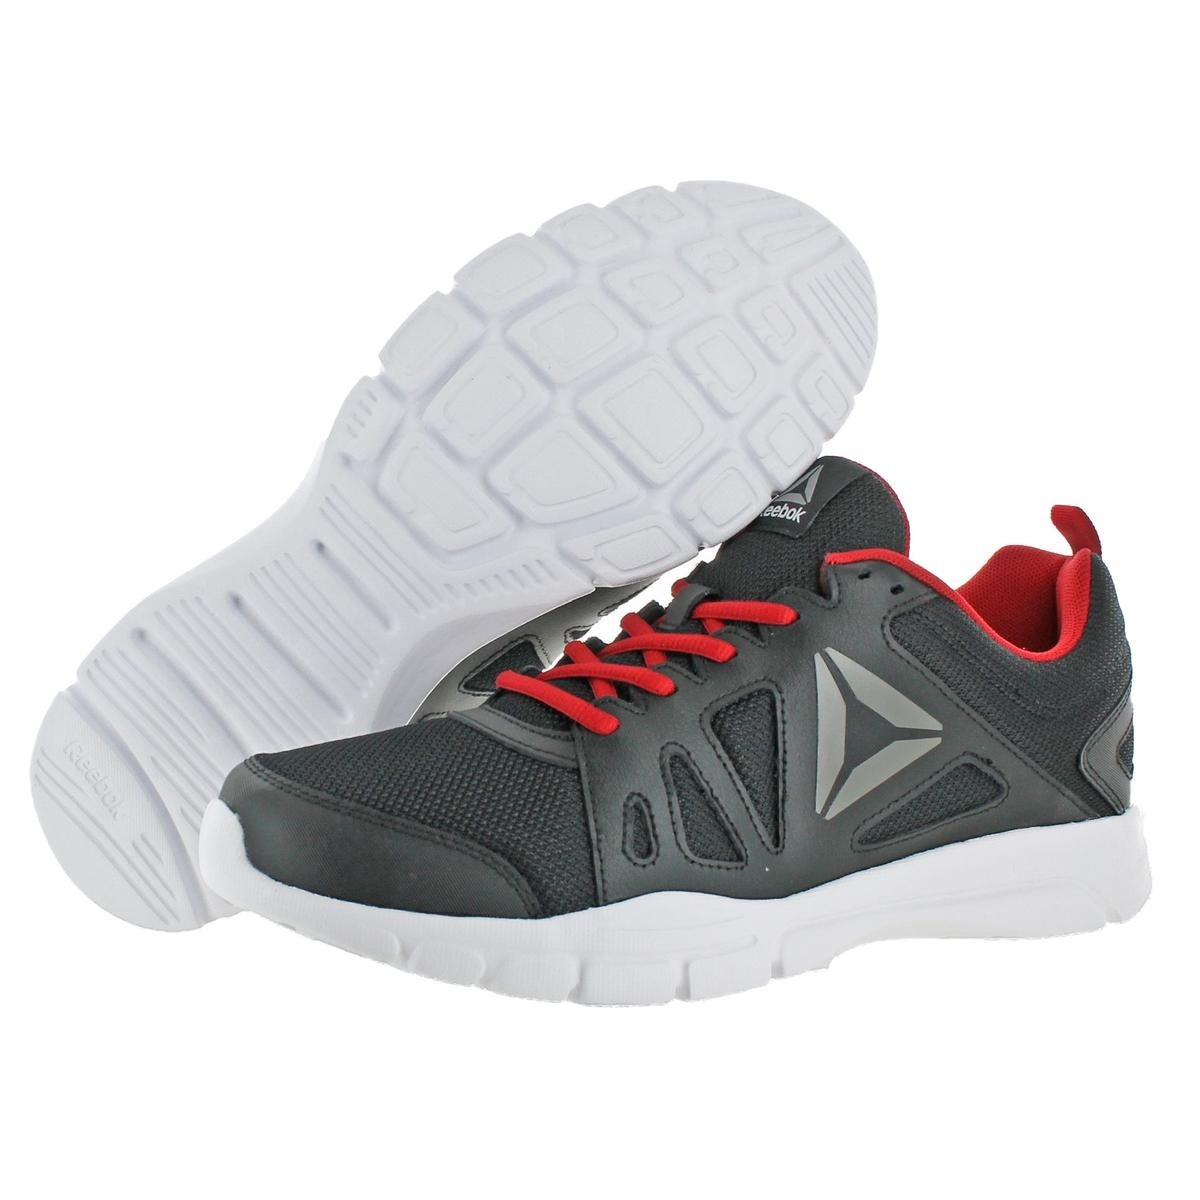 a9b6b8fdbdea1c Shop Reebok Mens Trainfusion Nine 2.0 LMT Trainers MemoryTech 3D Ultralite  - Free Shipping On Orders Over  45 - Overstock - 22680372